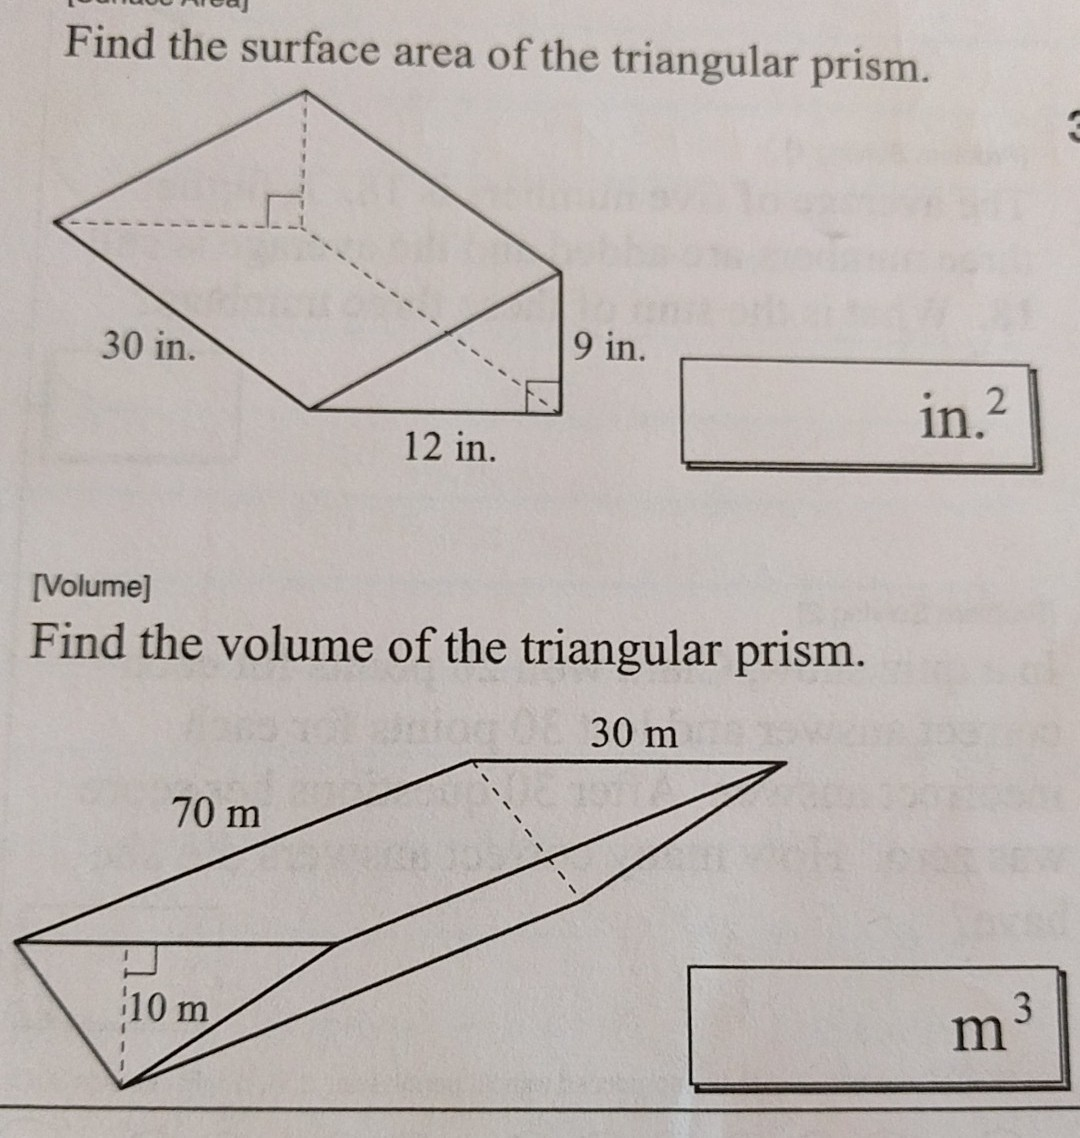 Find The Surface Area Of The Triangular Prism 30 In 9 In